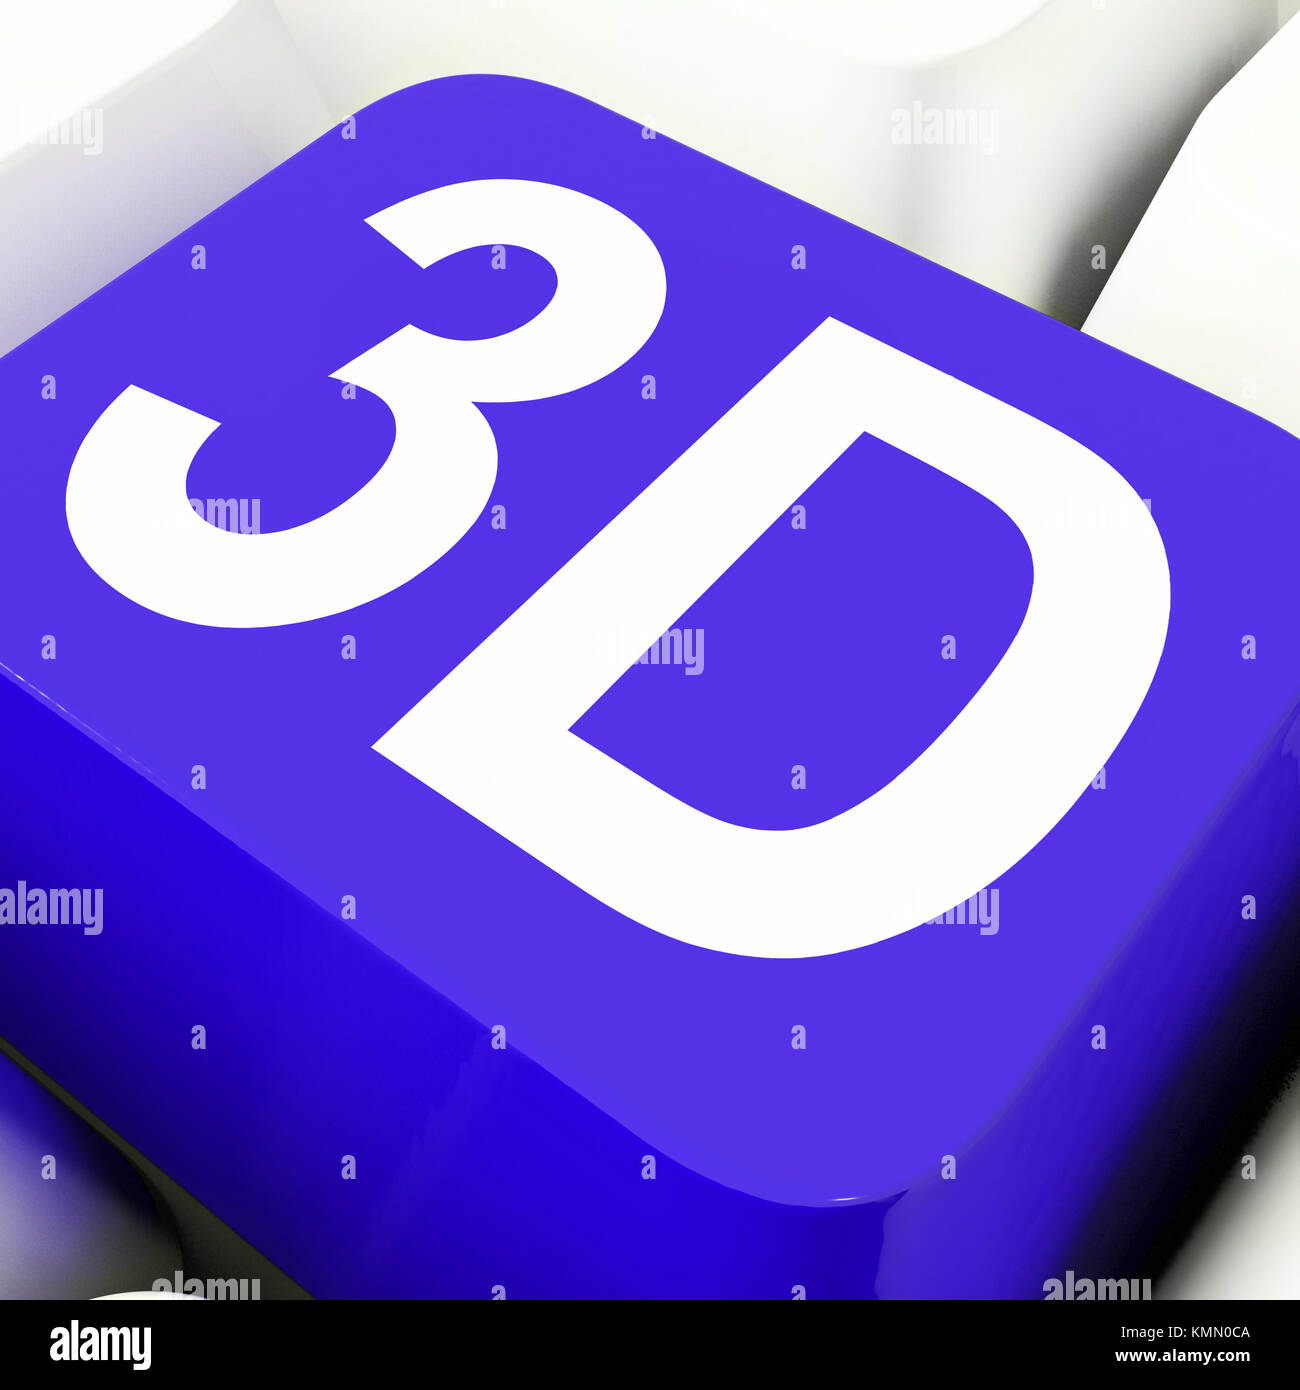 3d Key Showing Three Dimensional Or Dimensions - Stock Image